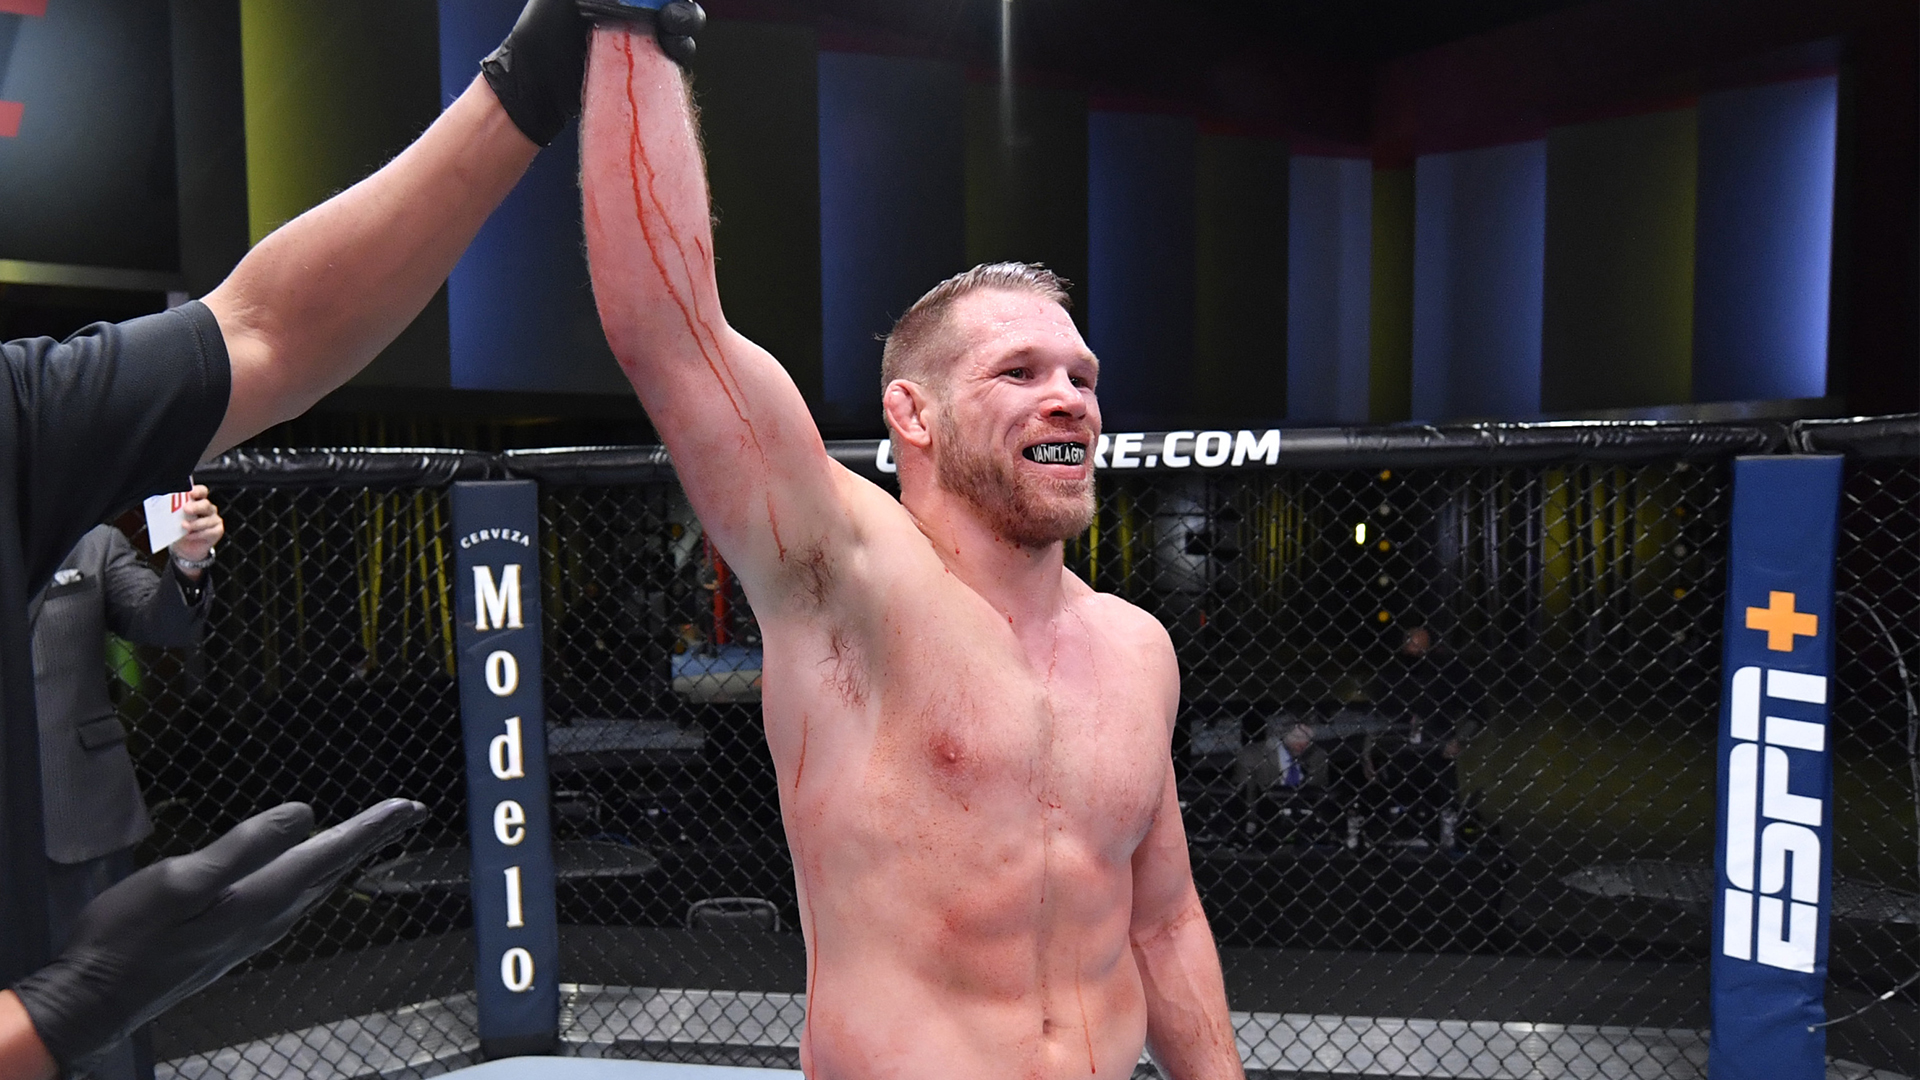 Jason Witt reacts after his submission victory over Cole Williams in a welterweight bout during the UFC Fight Night event at UFC APEX on October 31, 2020 in Las Vegas, Nevada. (Photo by Jeff Bottari/Zuffa LLC)